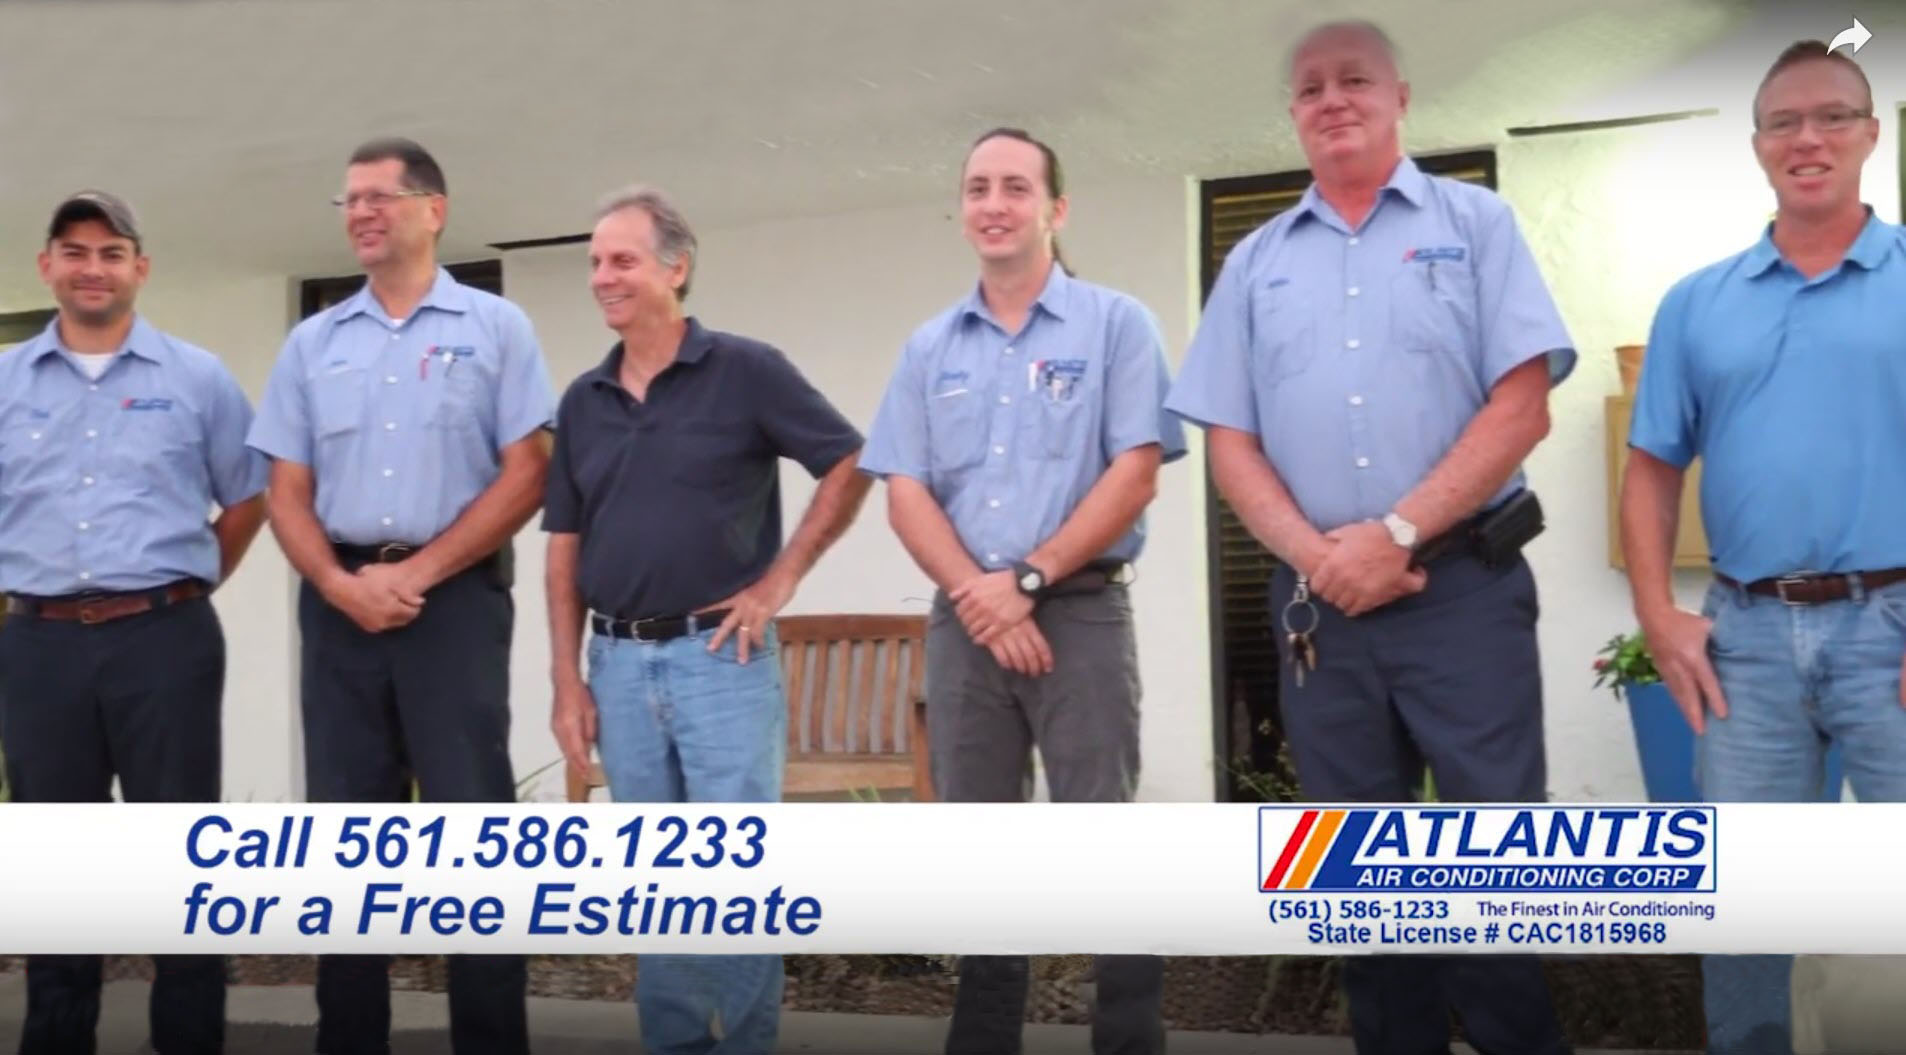 West Palm Beach Air Conditioning Heating and cooling service team